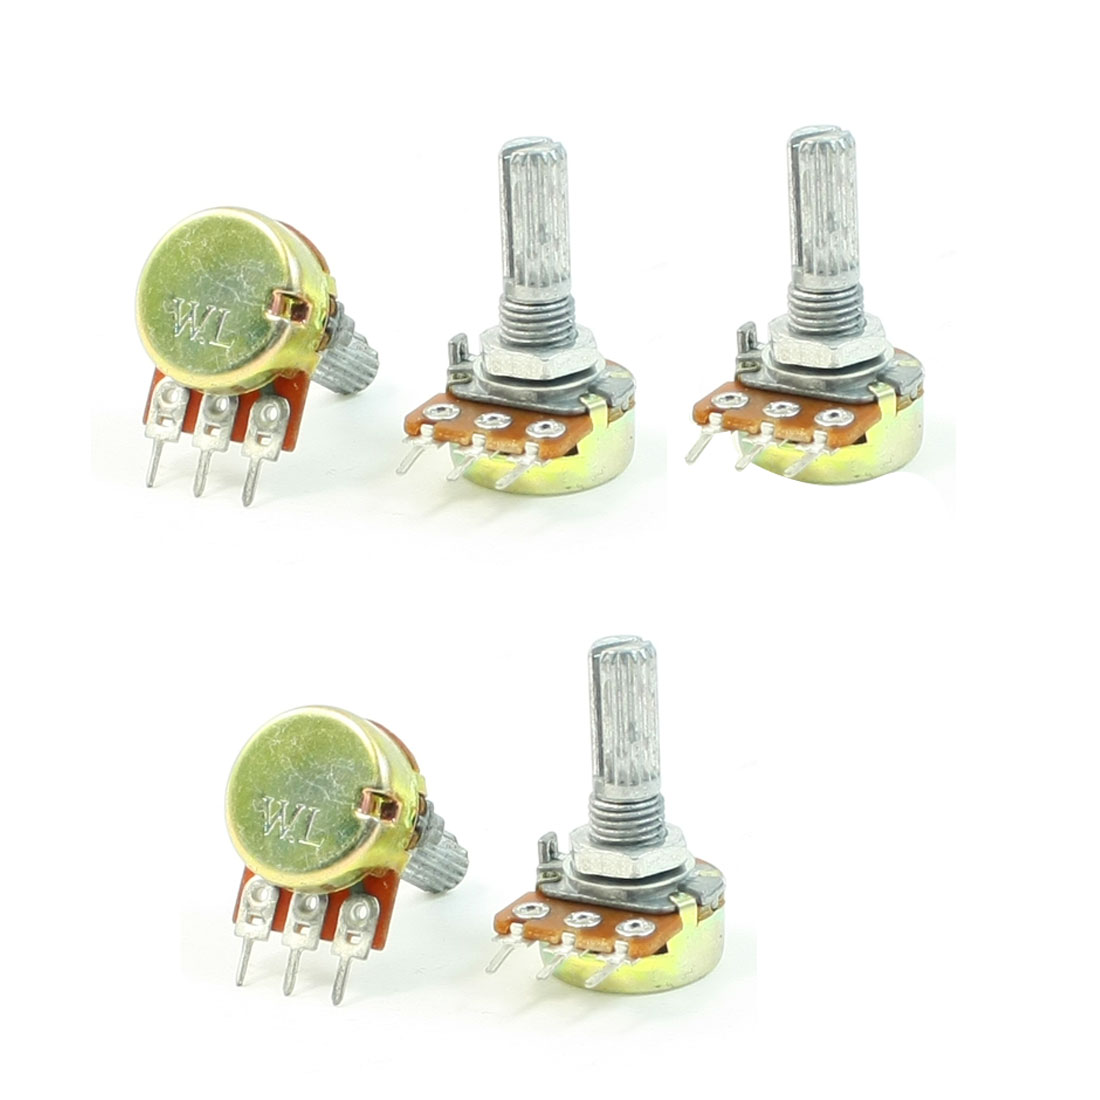 B10K 10K Ohm Adjustment Single Linear Rotary Taper Potentiometer 5 Pcs